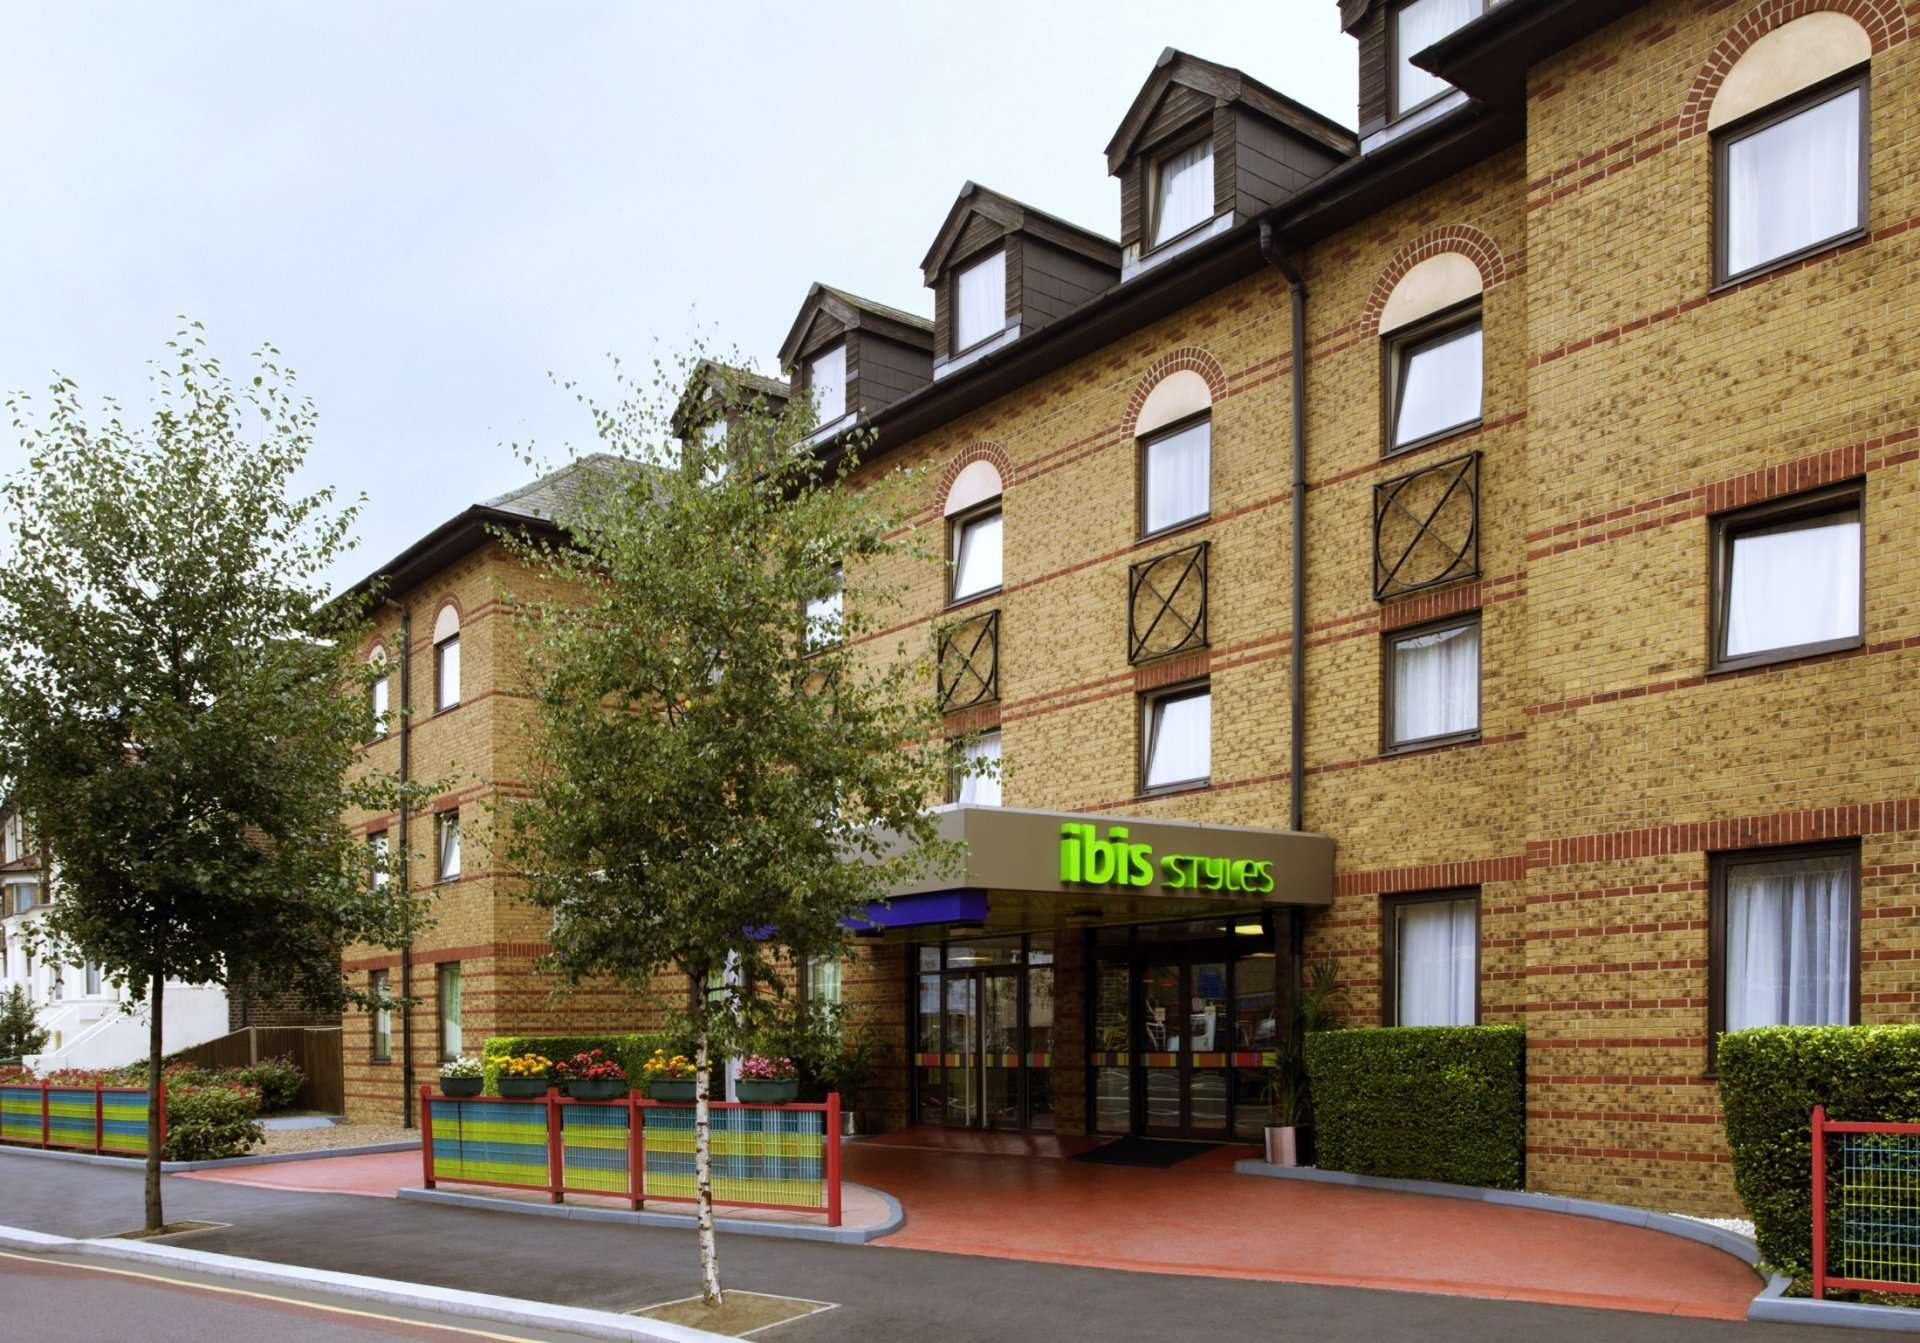 Ibis Styles Walthamstow Hotel